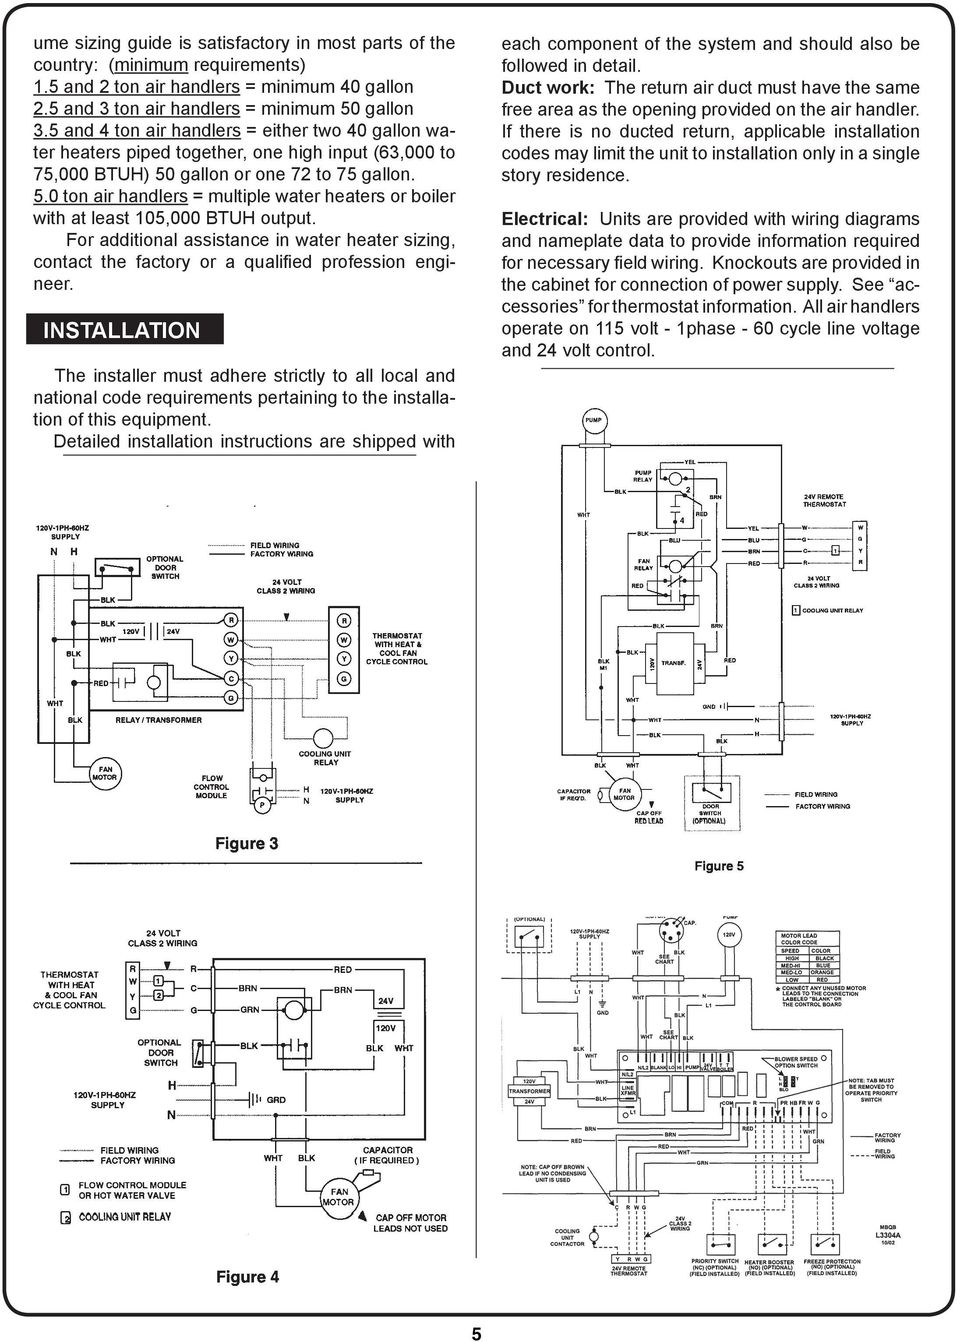 hight resolution of 5 0 ton air handlers multiple water heaters